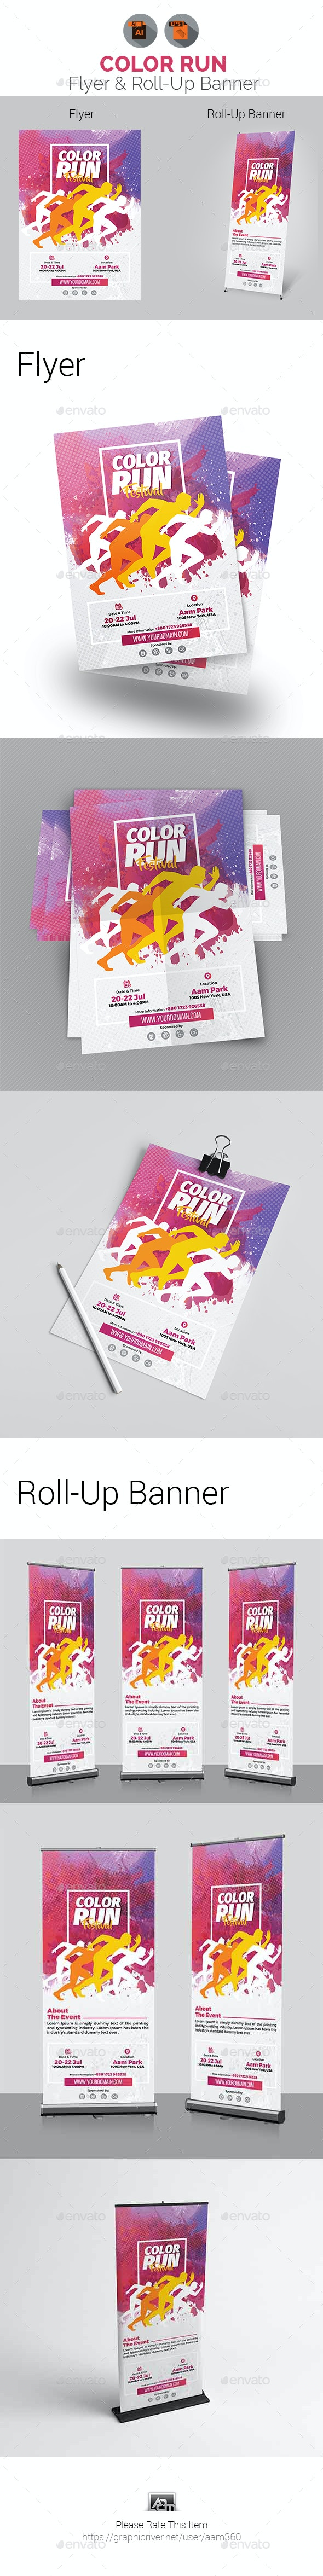 Color Run Festival Flyer & Roll-Up Banner - Print Templates